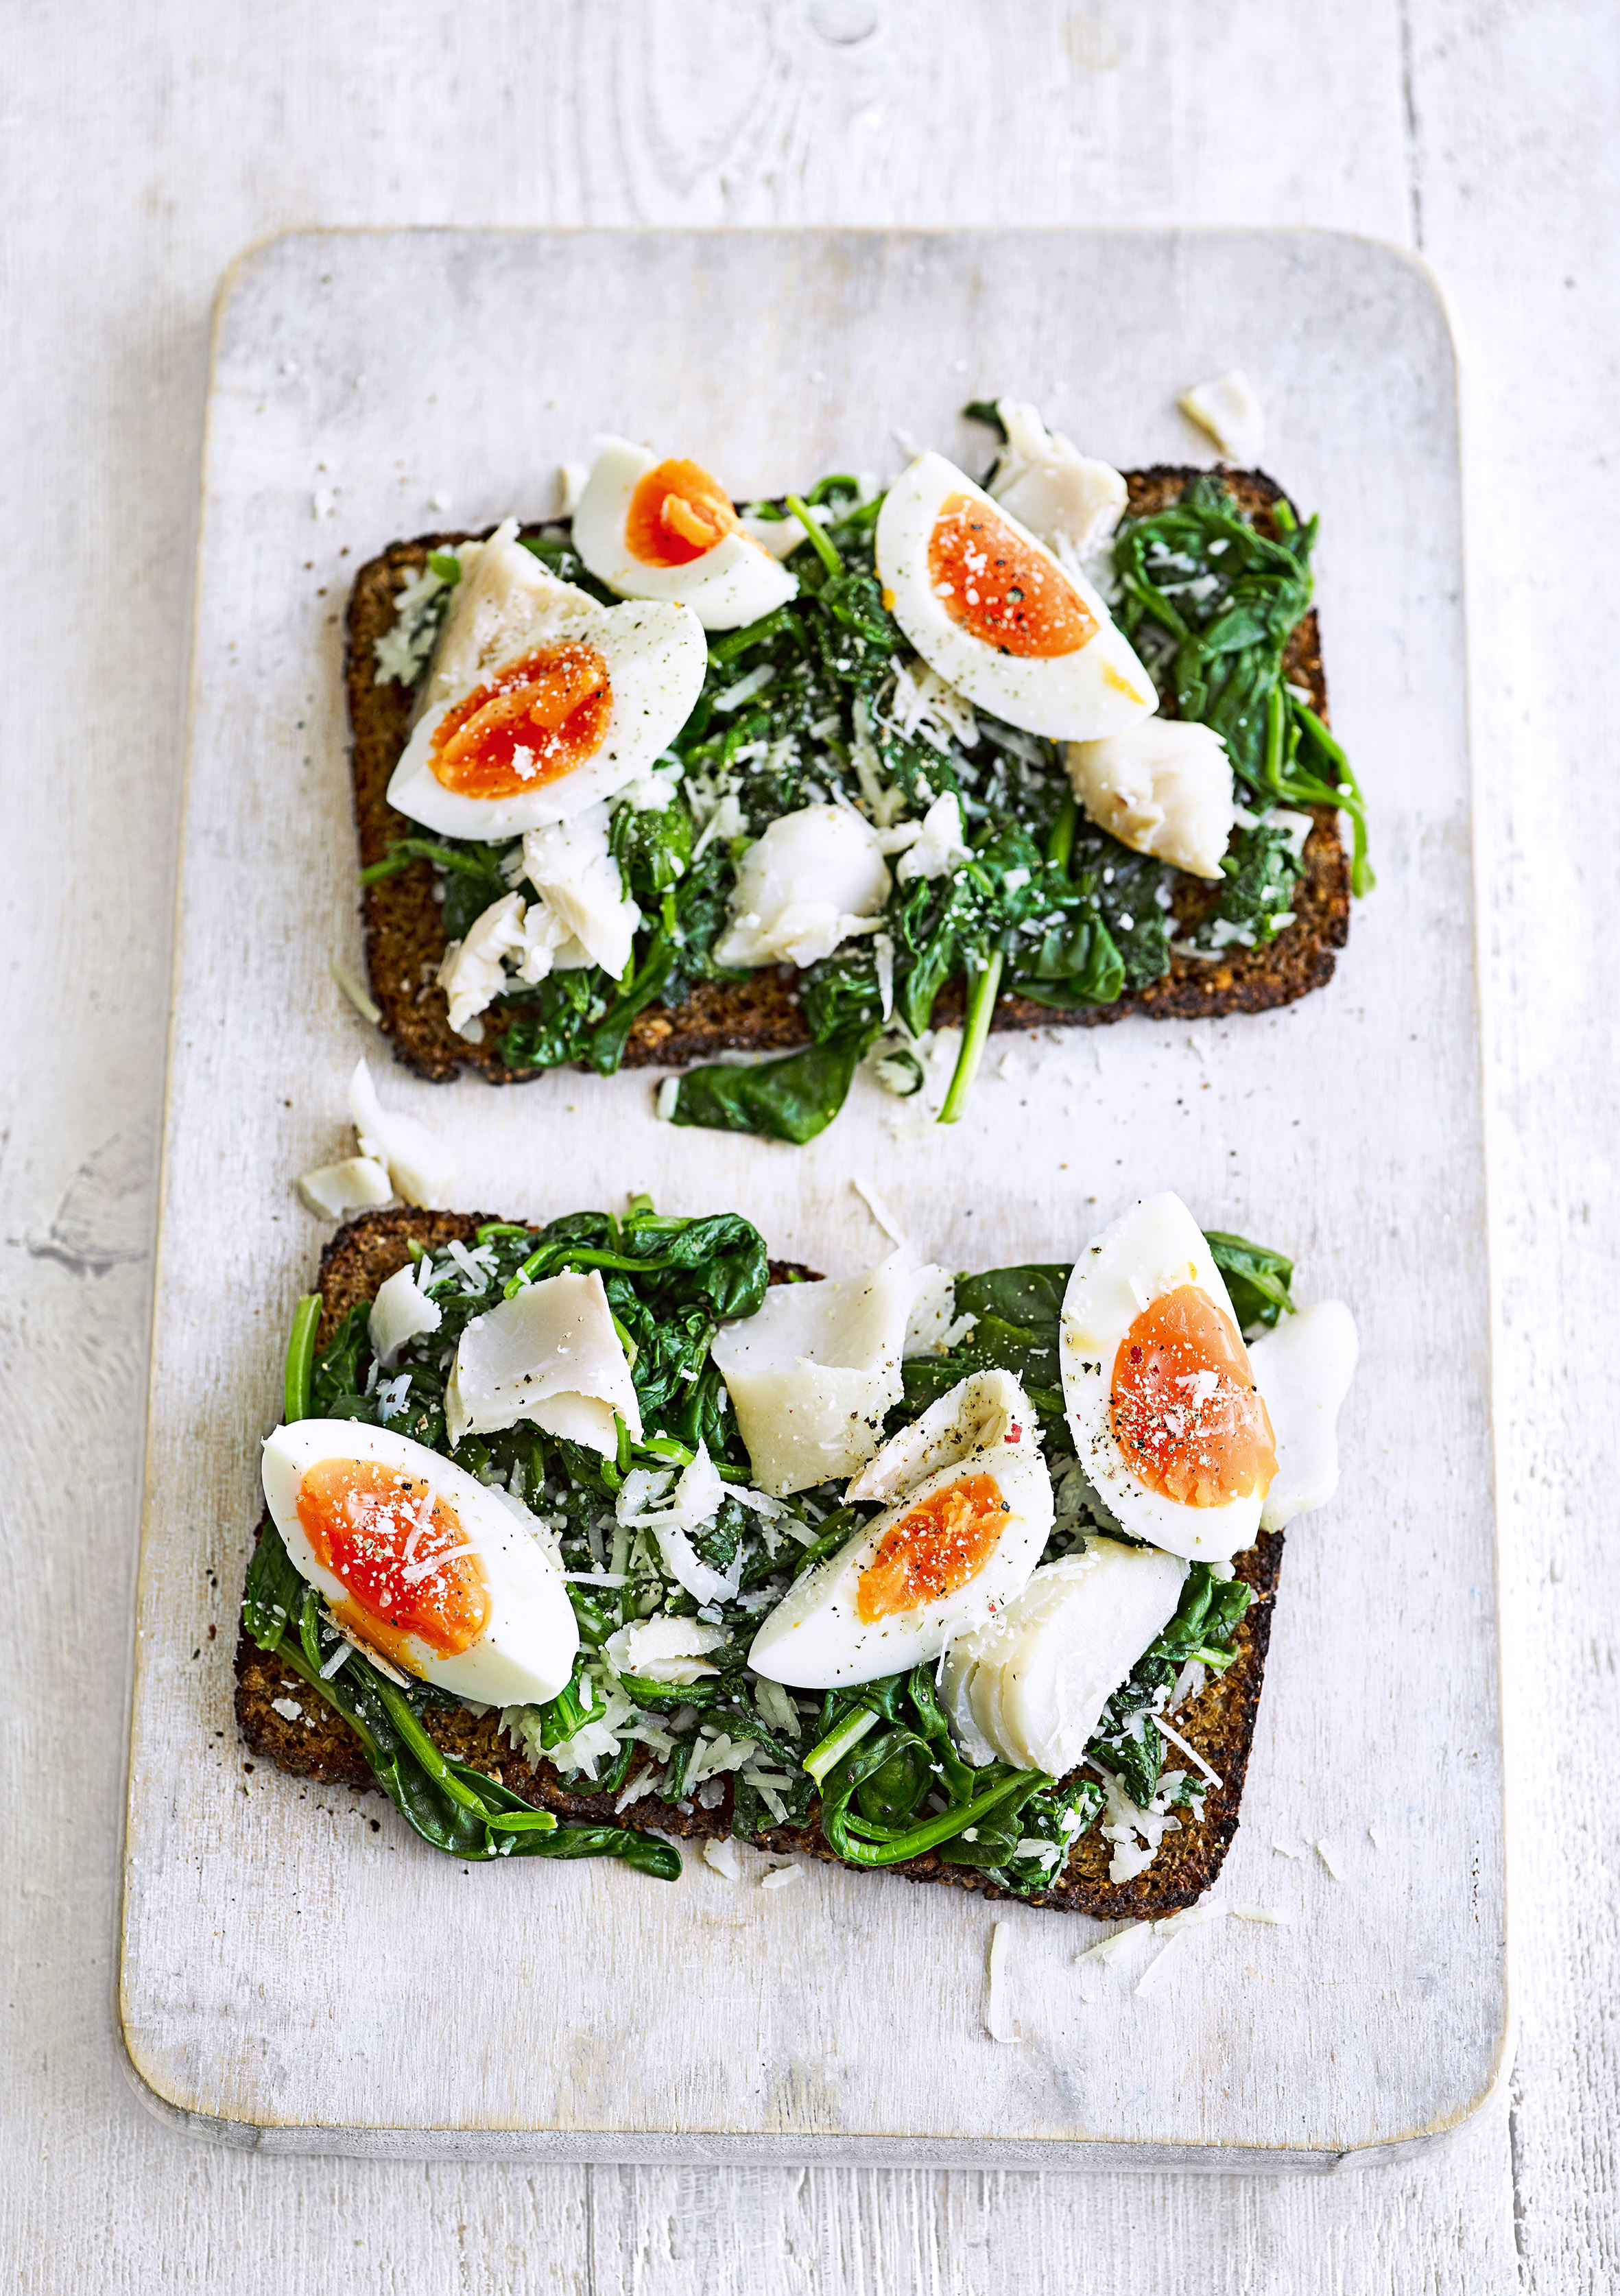 Smoked haddock and spinach rye toasts